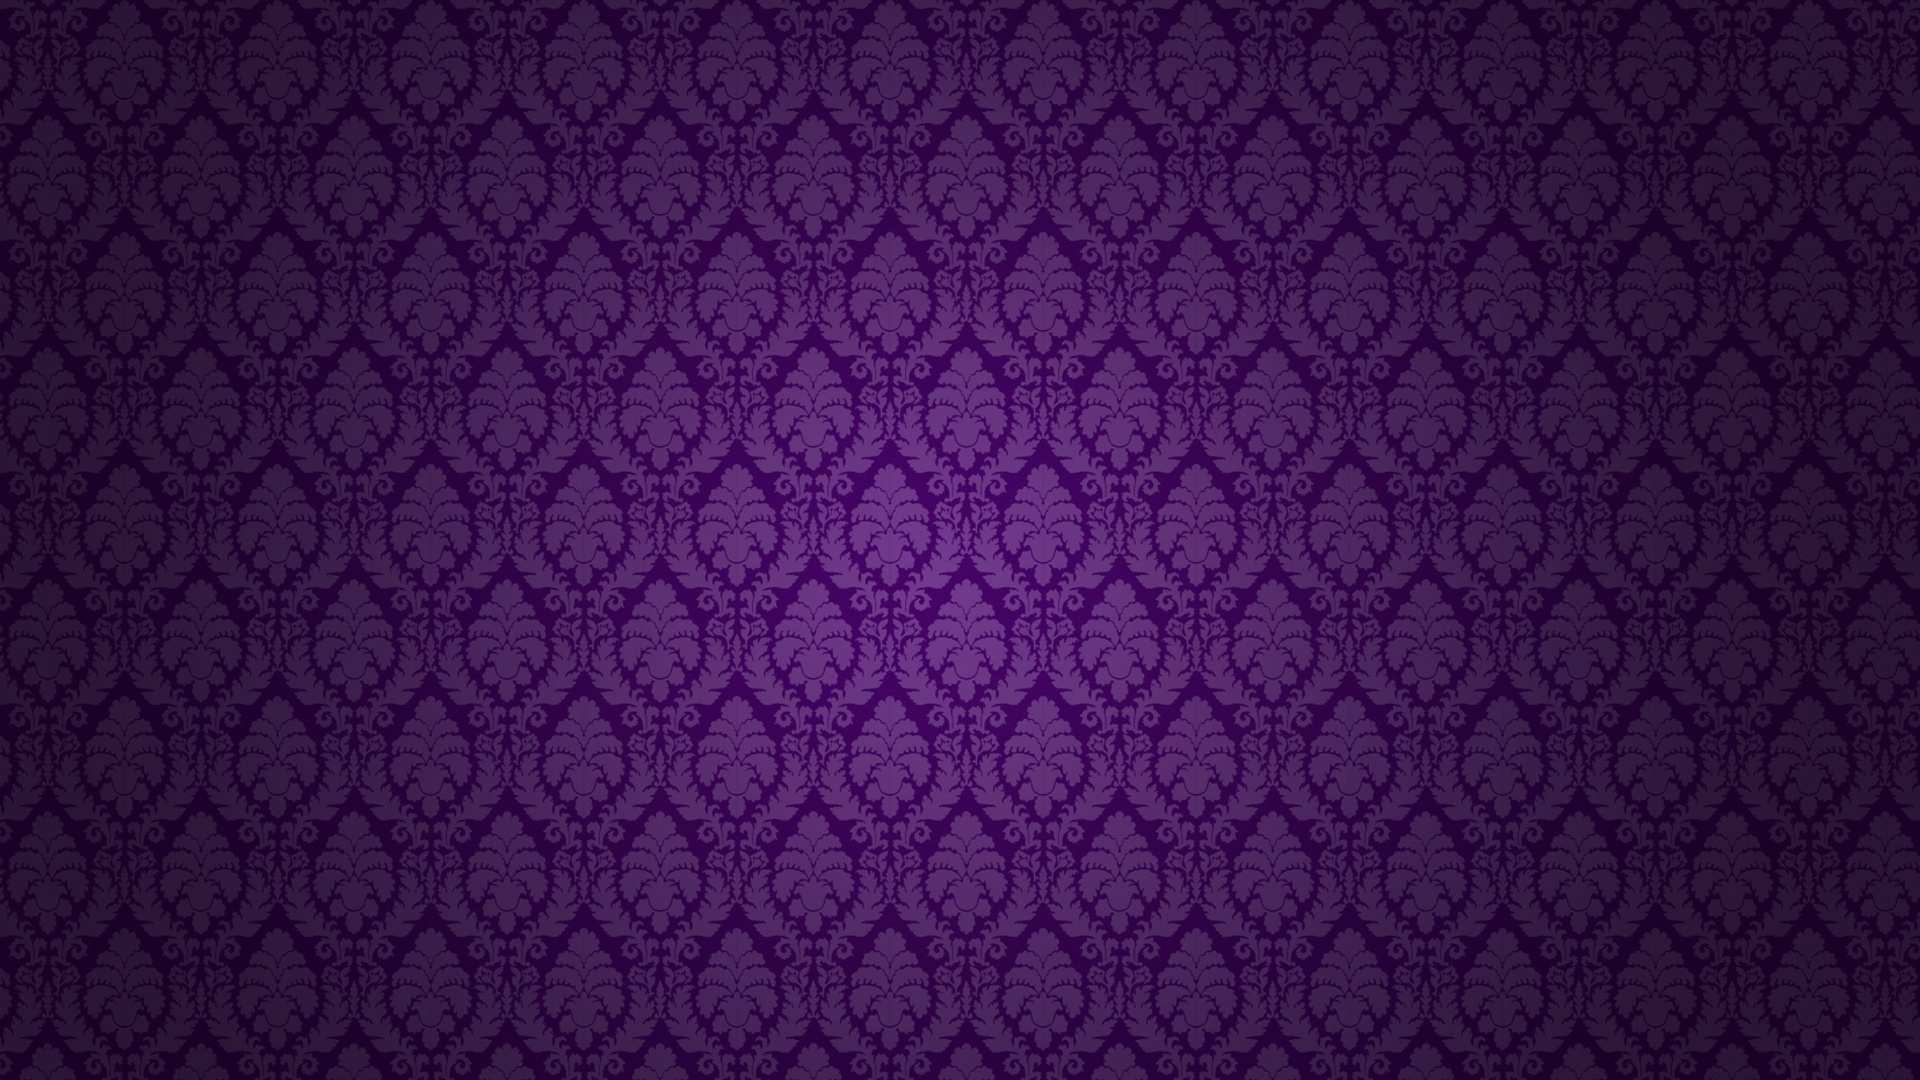 Purple Wallpaper Vintage Wall 1080p  7096 Wallpaper   WallDiskPaper Purple Wallpaper Vintage Wall 1080p